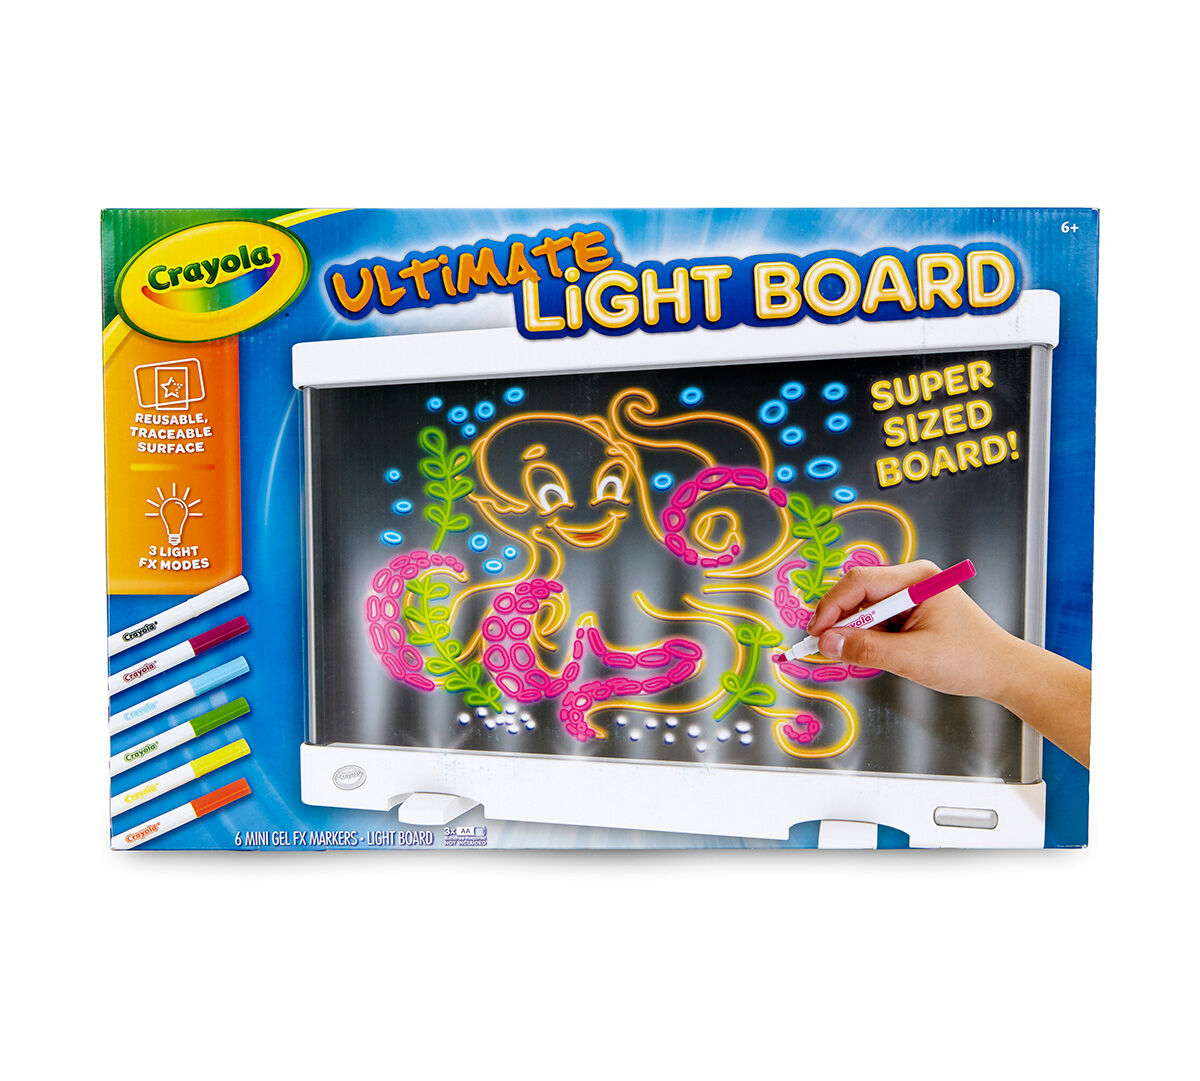 Crayola Ultimate Light Board; LED Light Up Drawing Surface